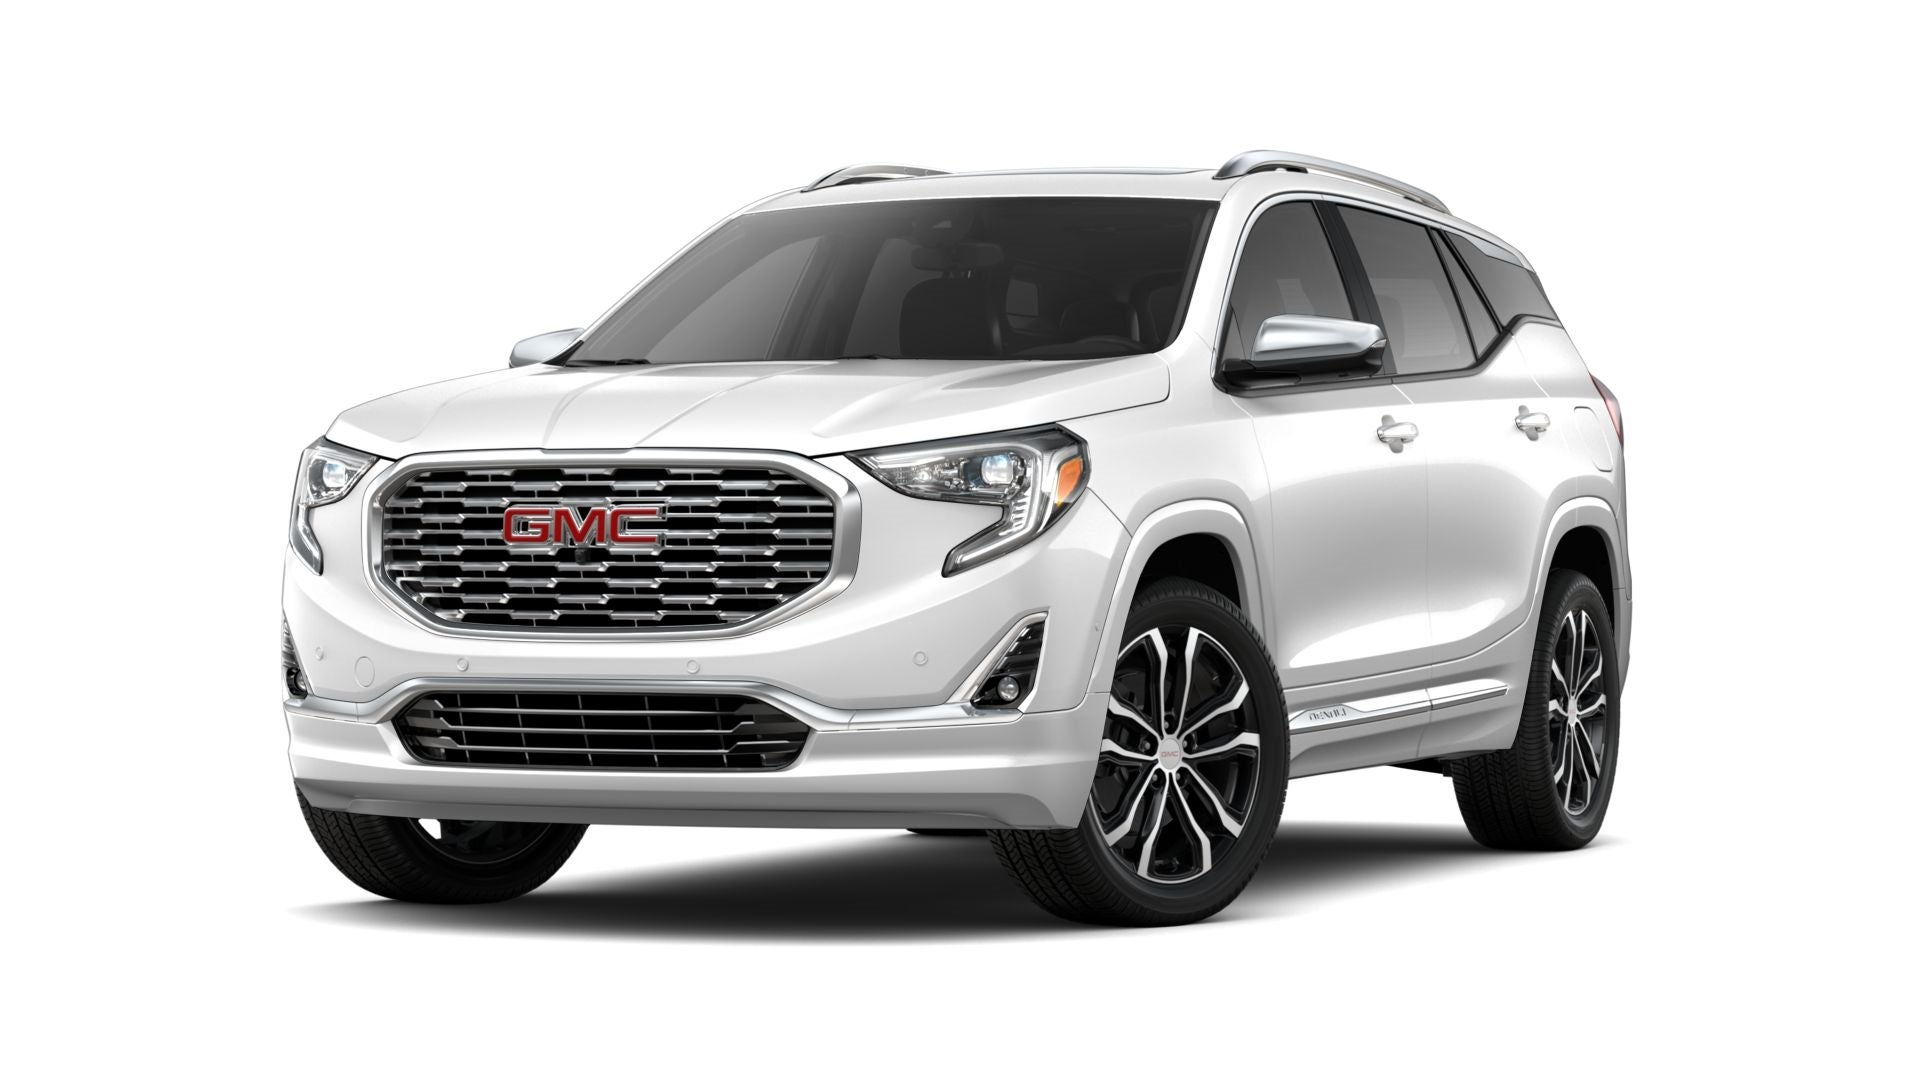 2020 Gmc Terrain Denali Huntington Wv Charleston Ashland Ironton West Virginia 3gkalxex5ll341870